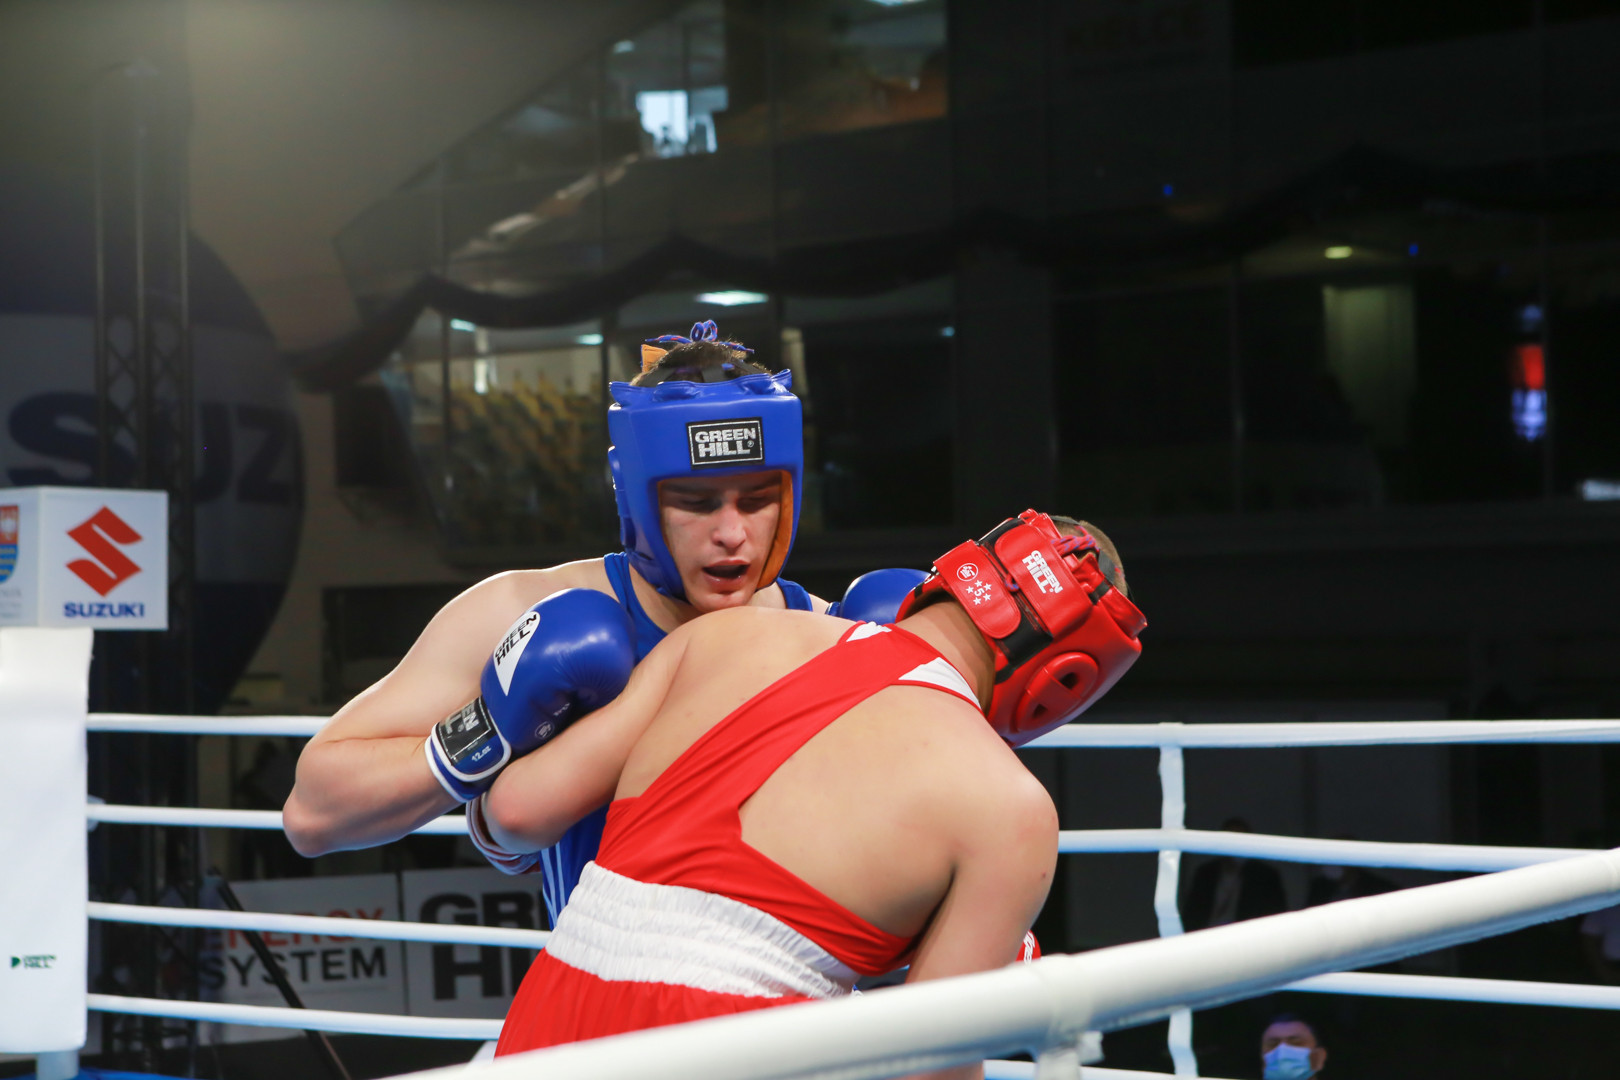 Busy day of action at AIBA Youth World Boxing Championships as opening bouts continue